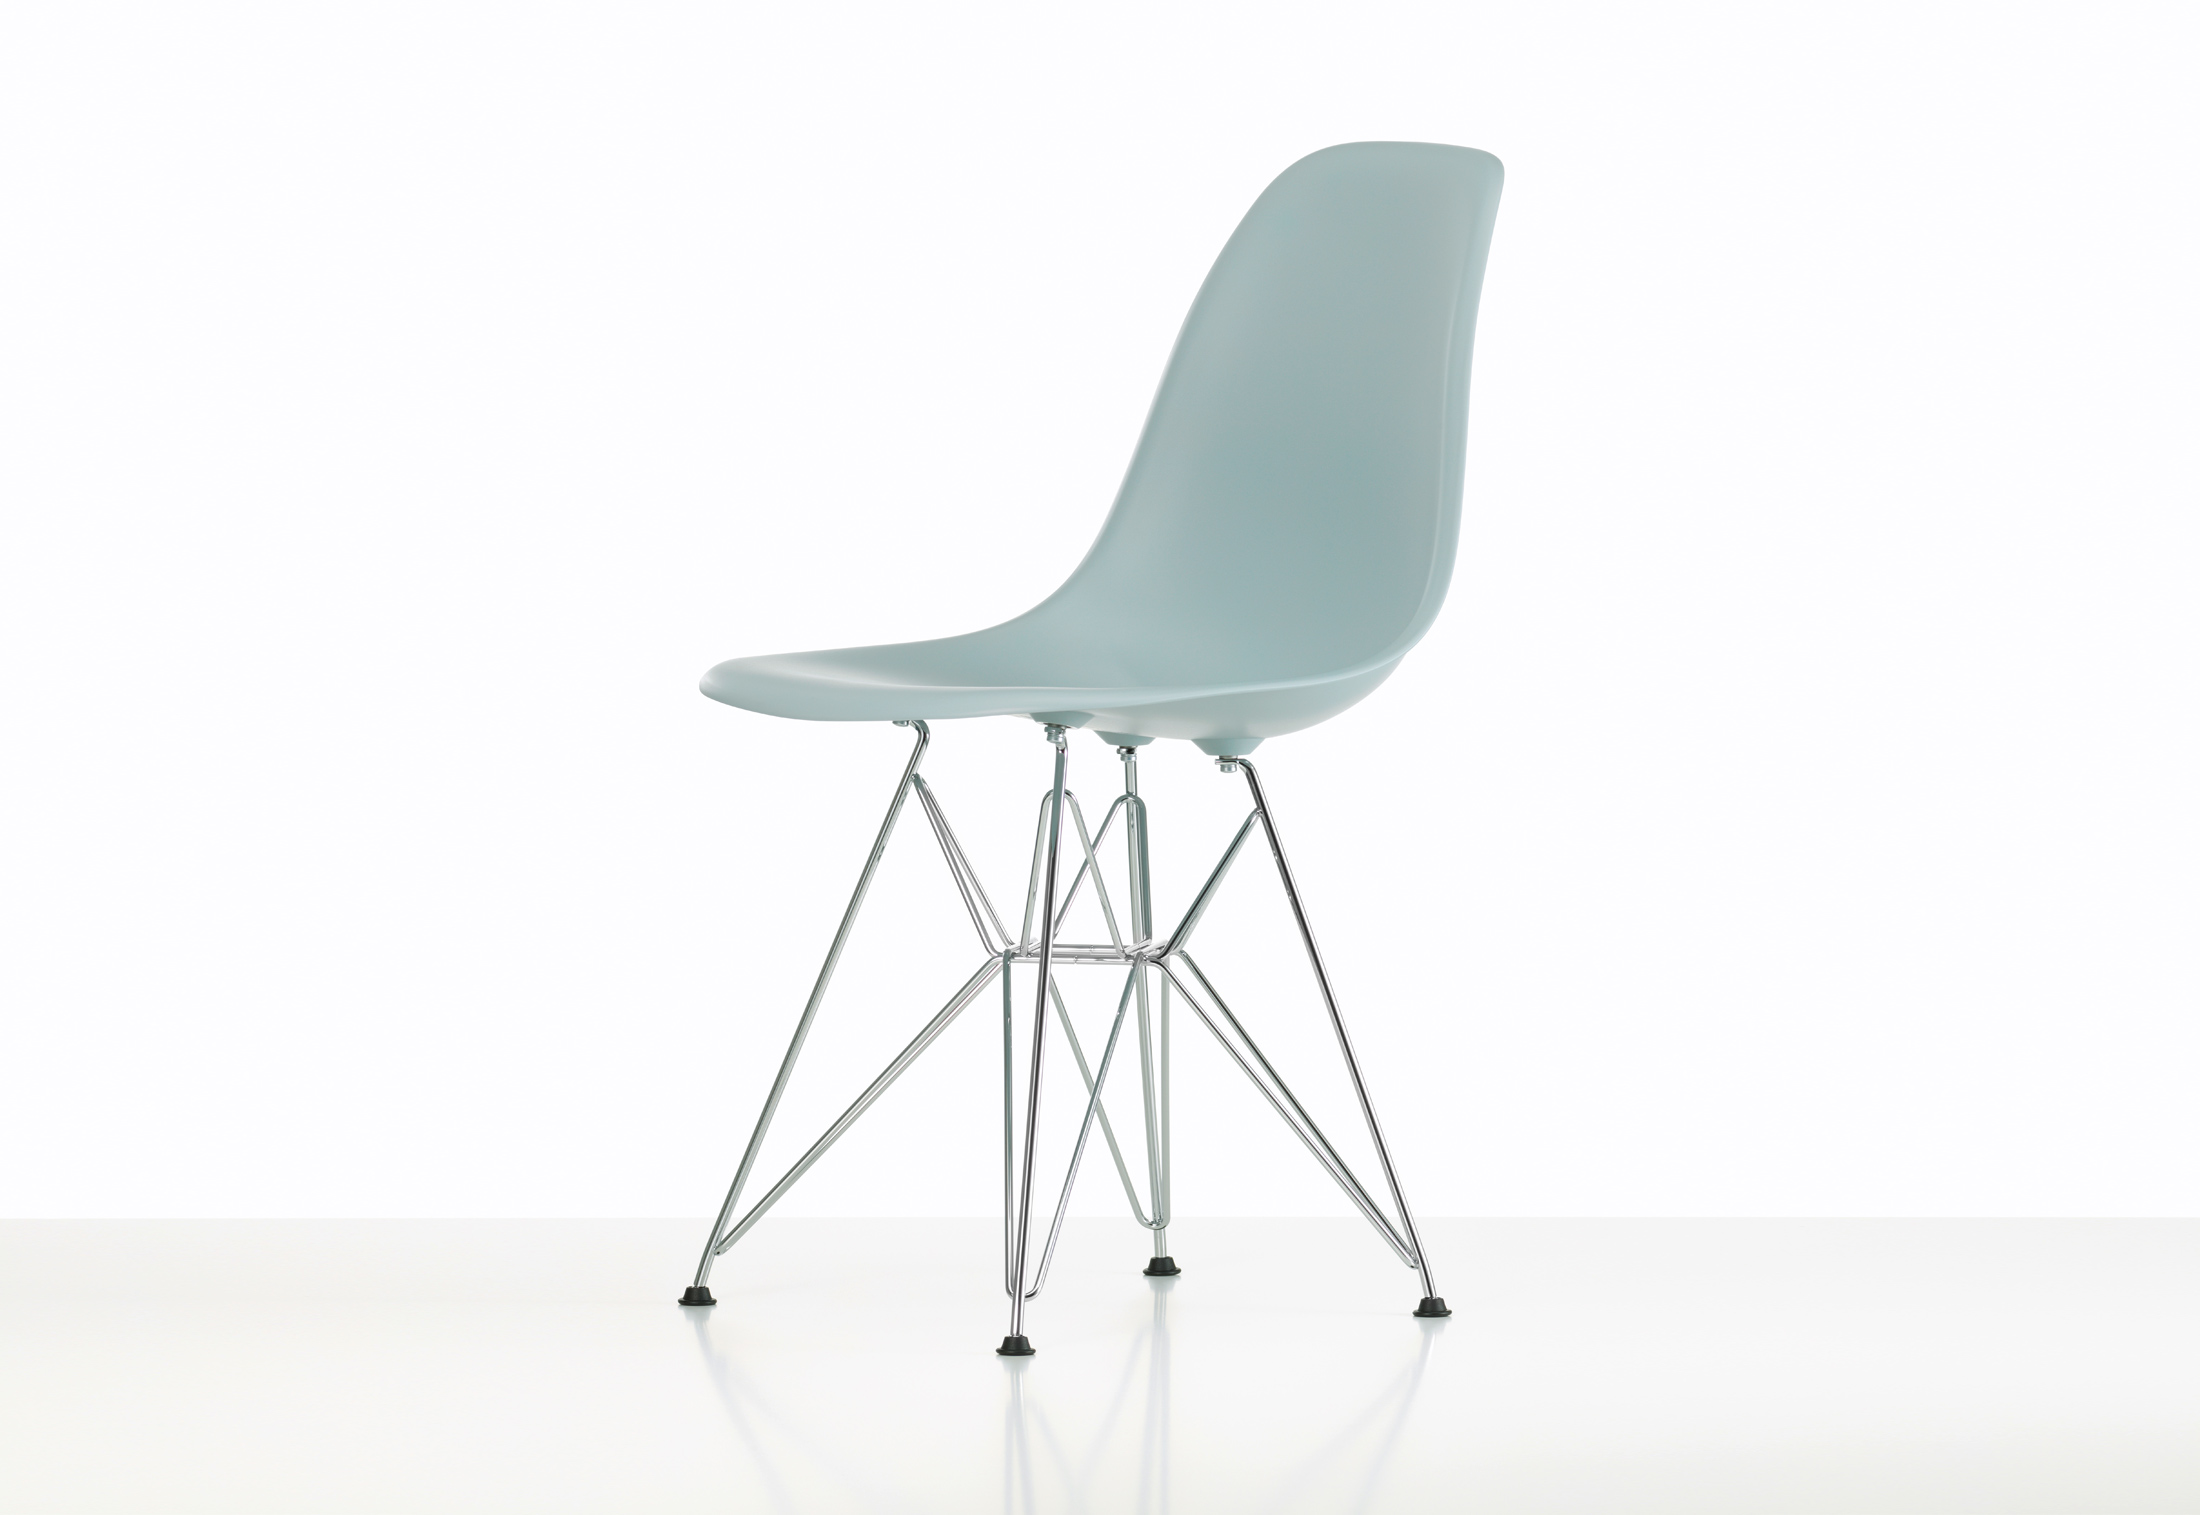 Eames Plastic Chair Eames Plastic Side Chair Dsr By Vitra Stylepark